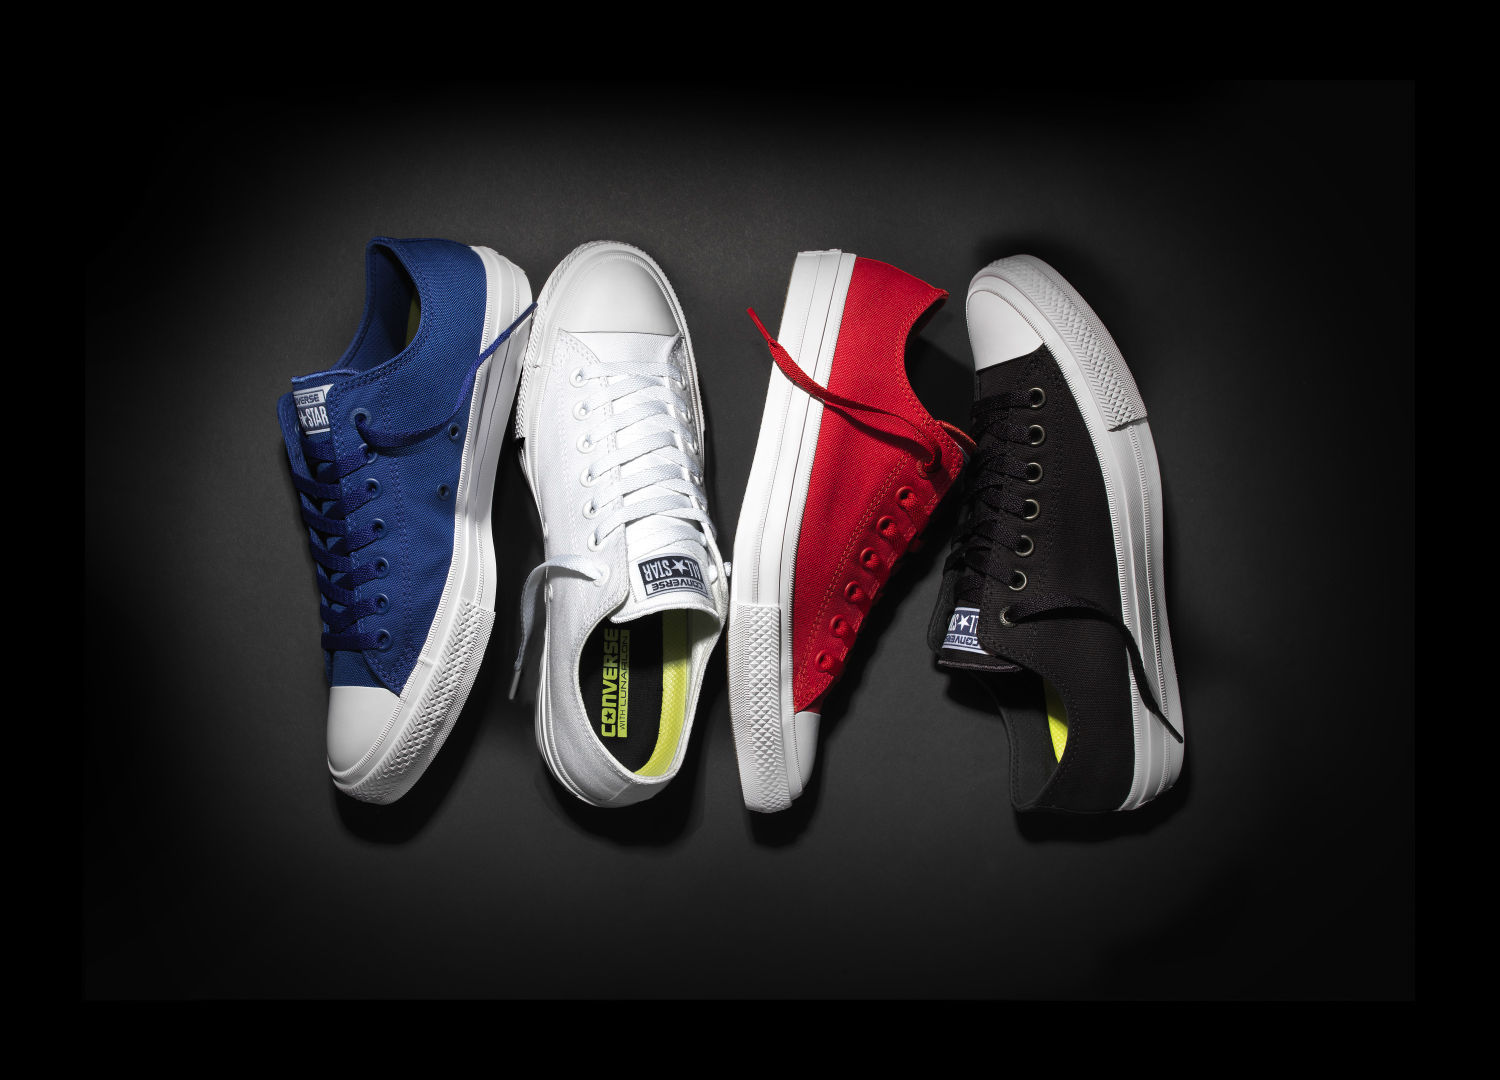 The new Chuck Taylors will actually be